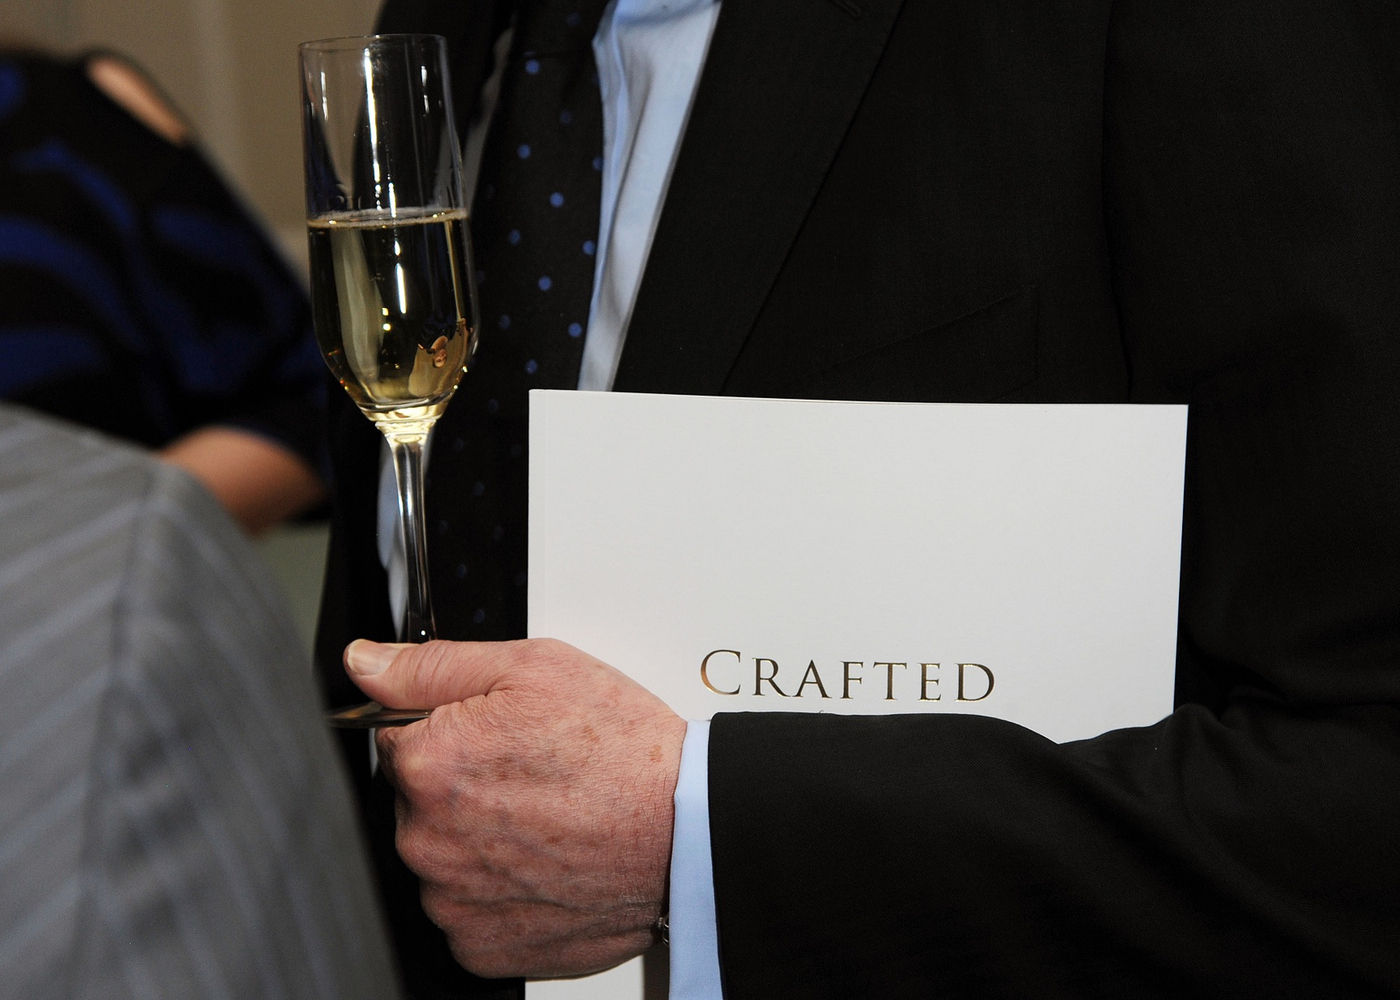 tallowin awarded a place on WALPOLE Crafted